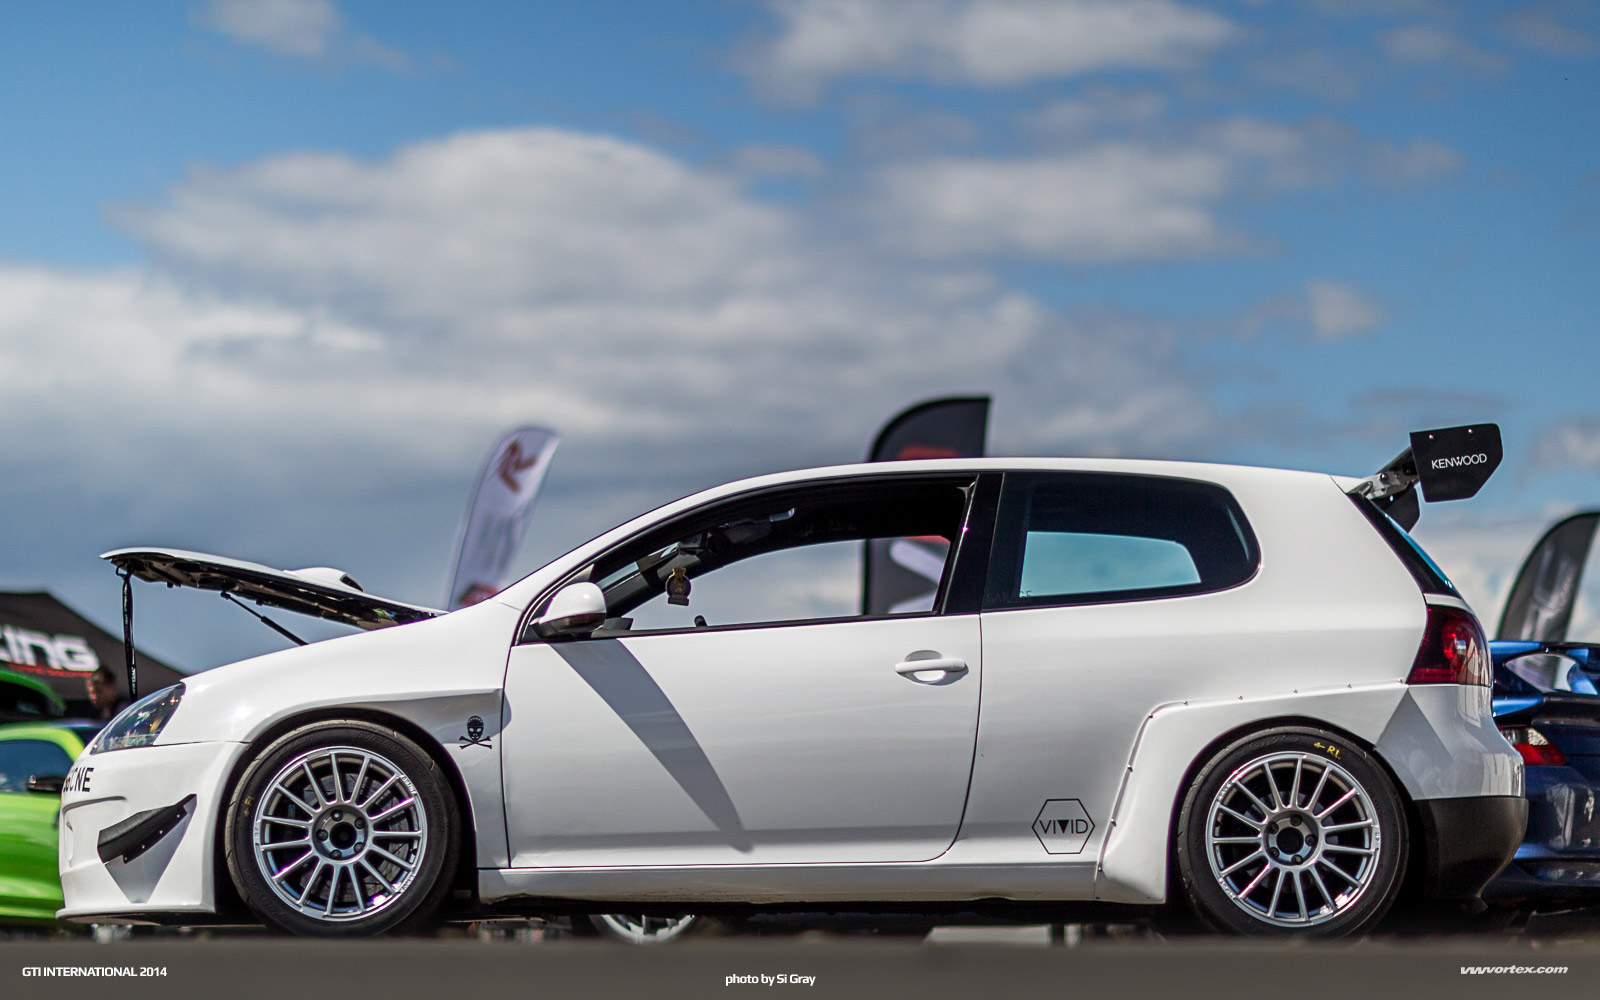 Si-Gray-GTI-International-2014-598